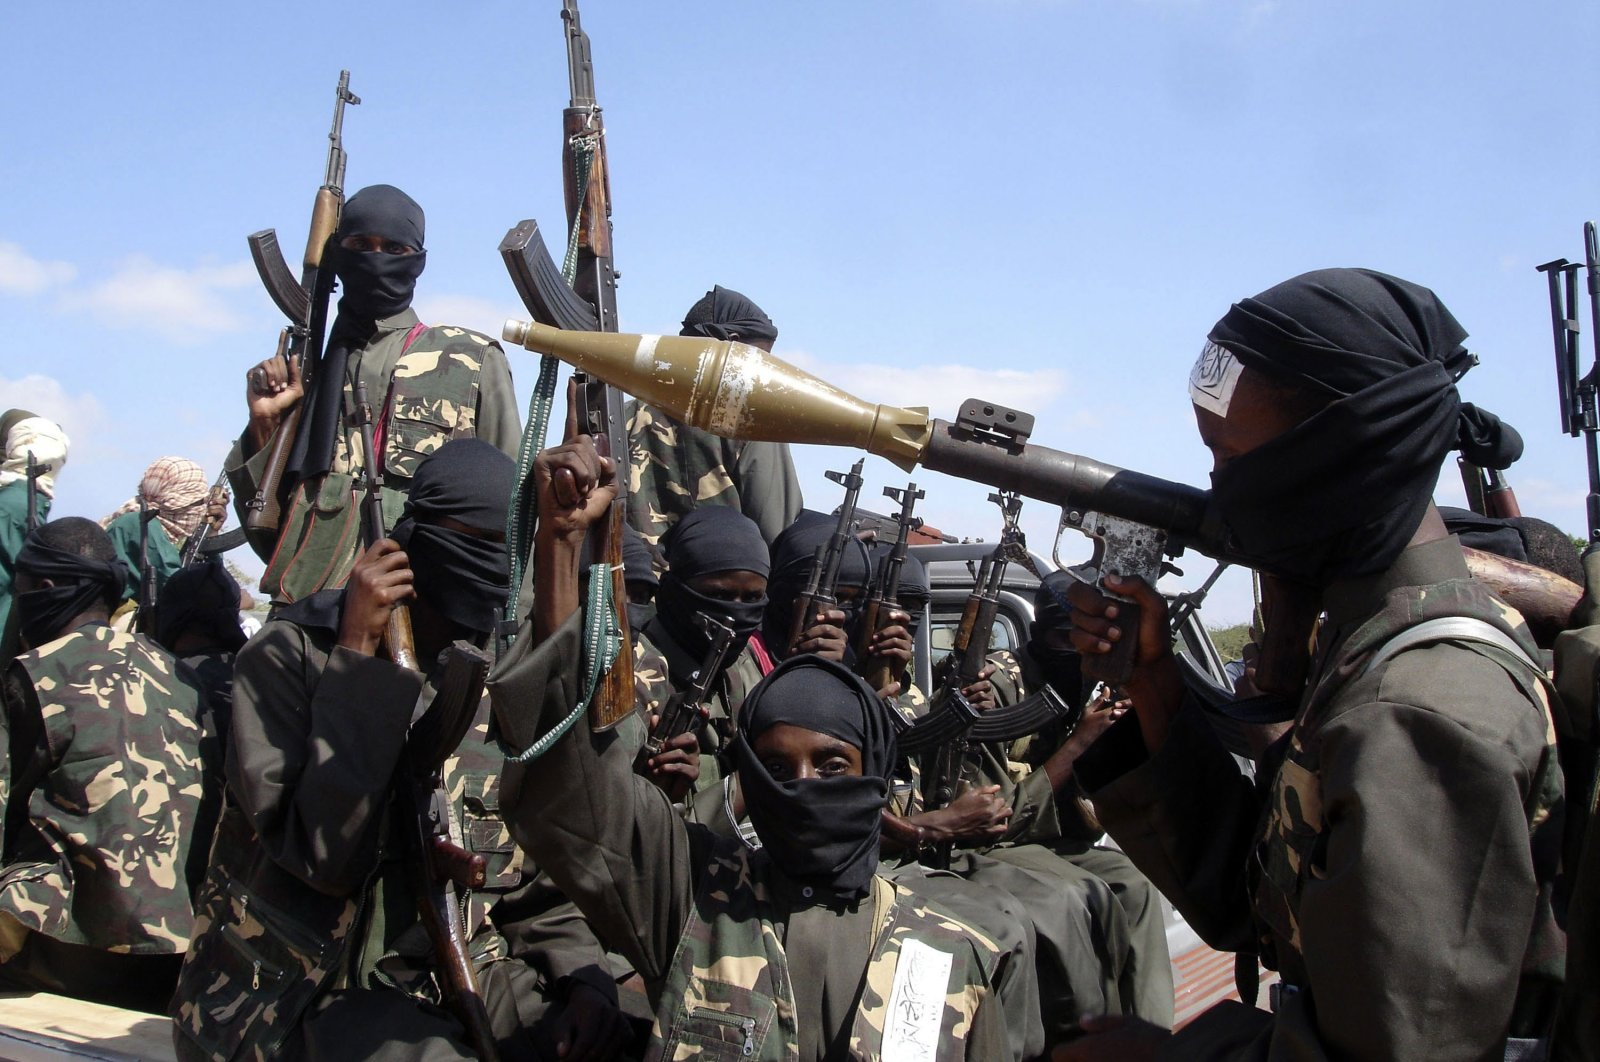 Armed Al-shabab militants on pickup trucks prepare to travel into the city, just outside Mogadishu, in Somalia, Dec. 8, 2008. (AP Photo)